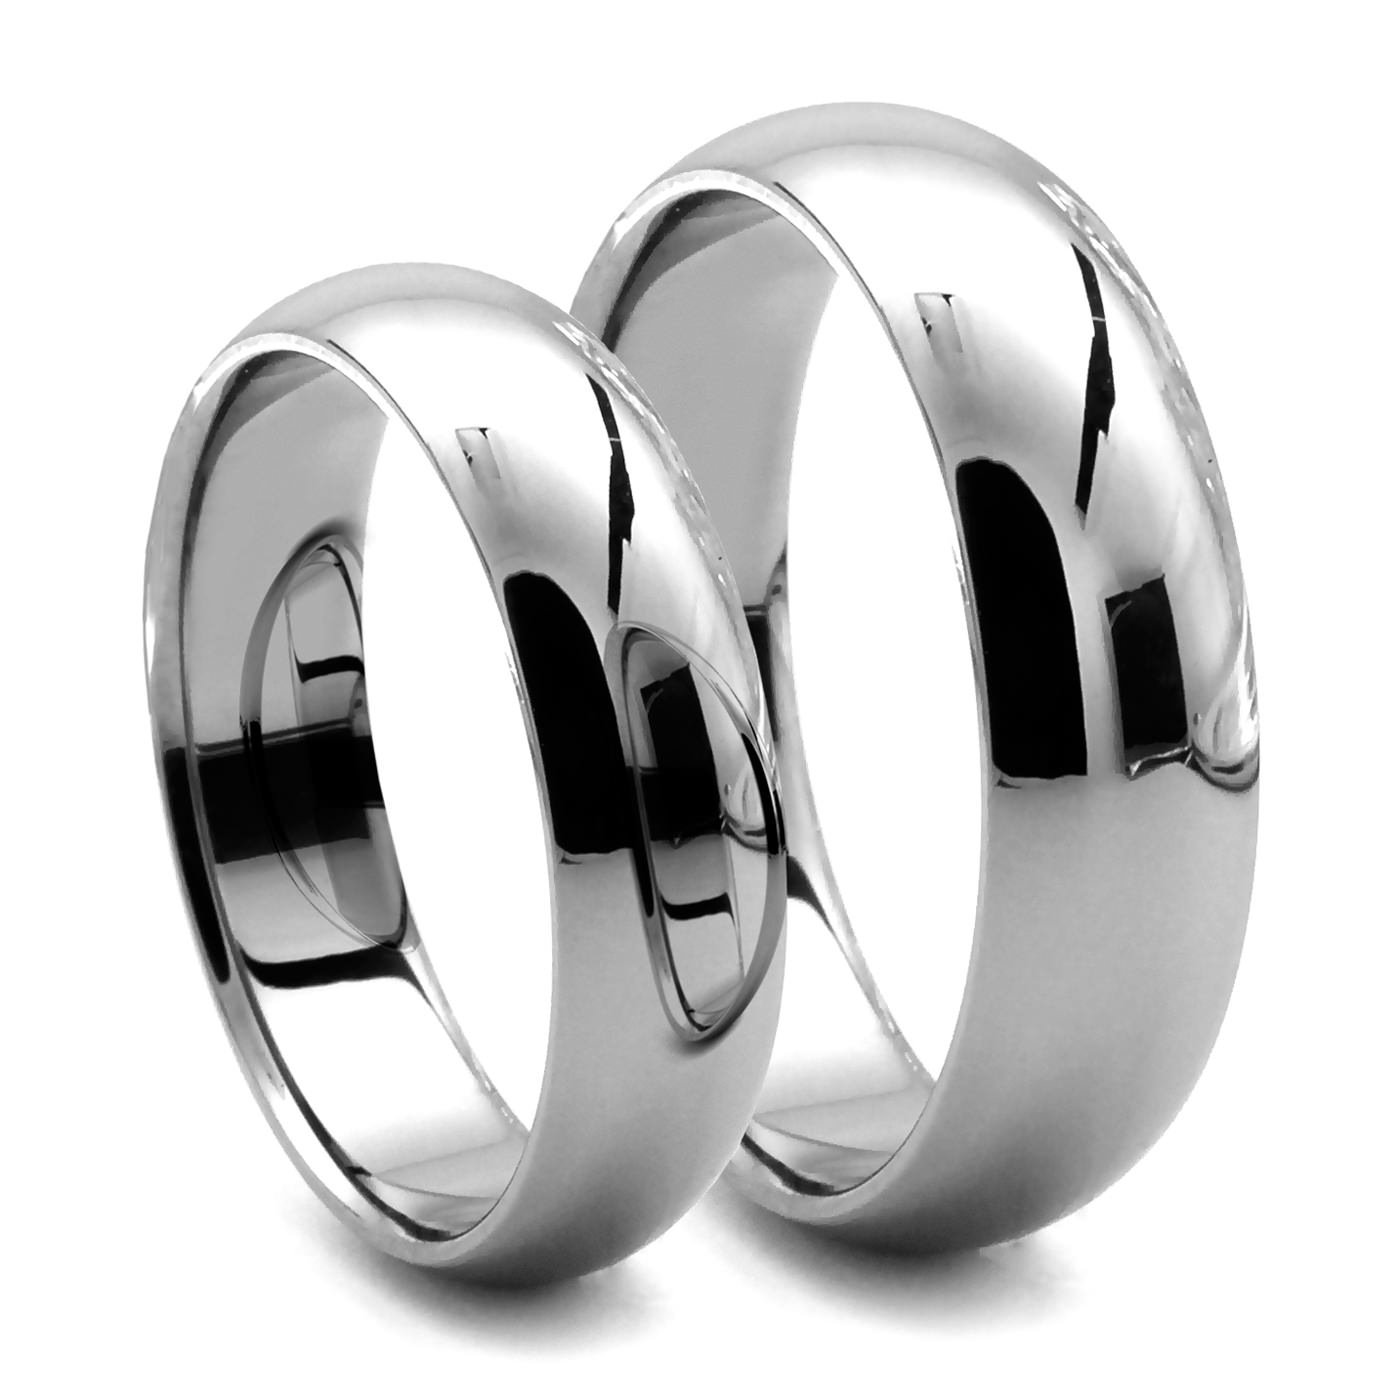 size bands ring band idea platinum mm wedding awesome mens of co thick tiffany elegant grams